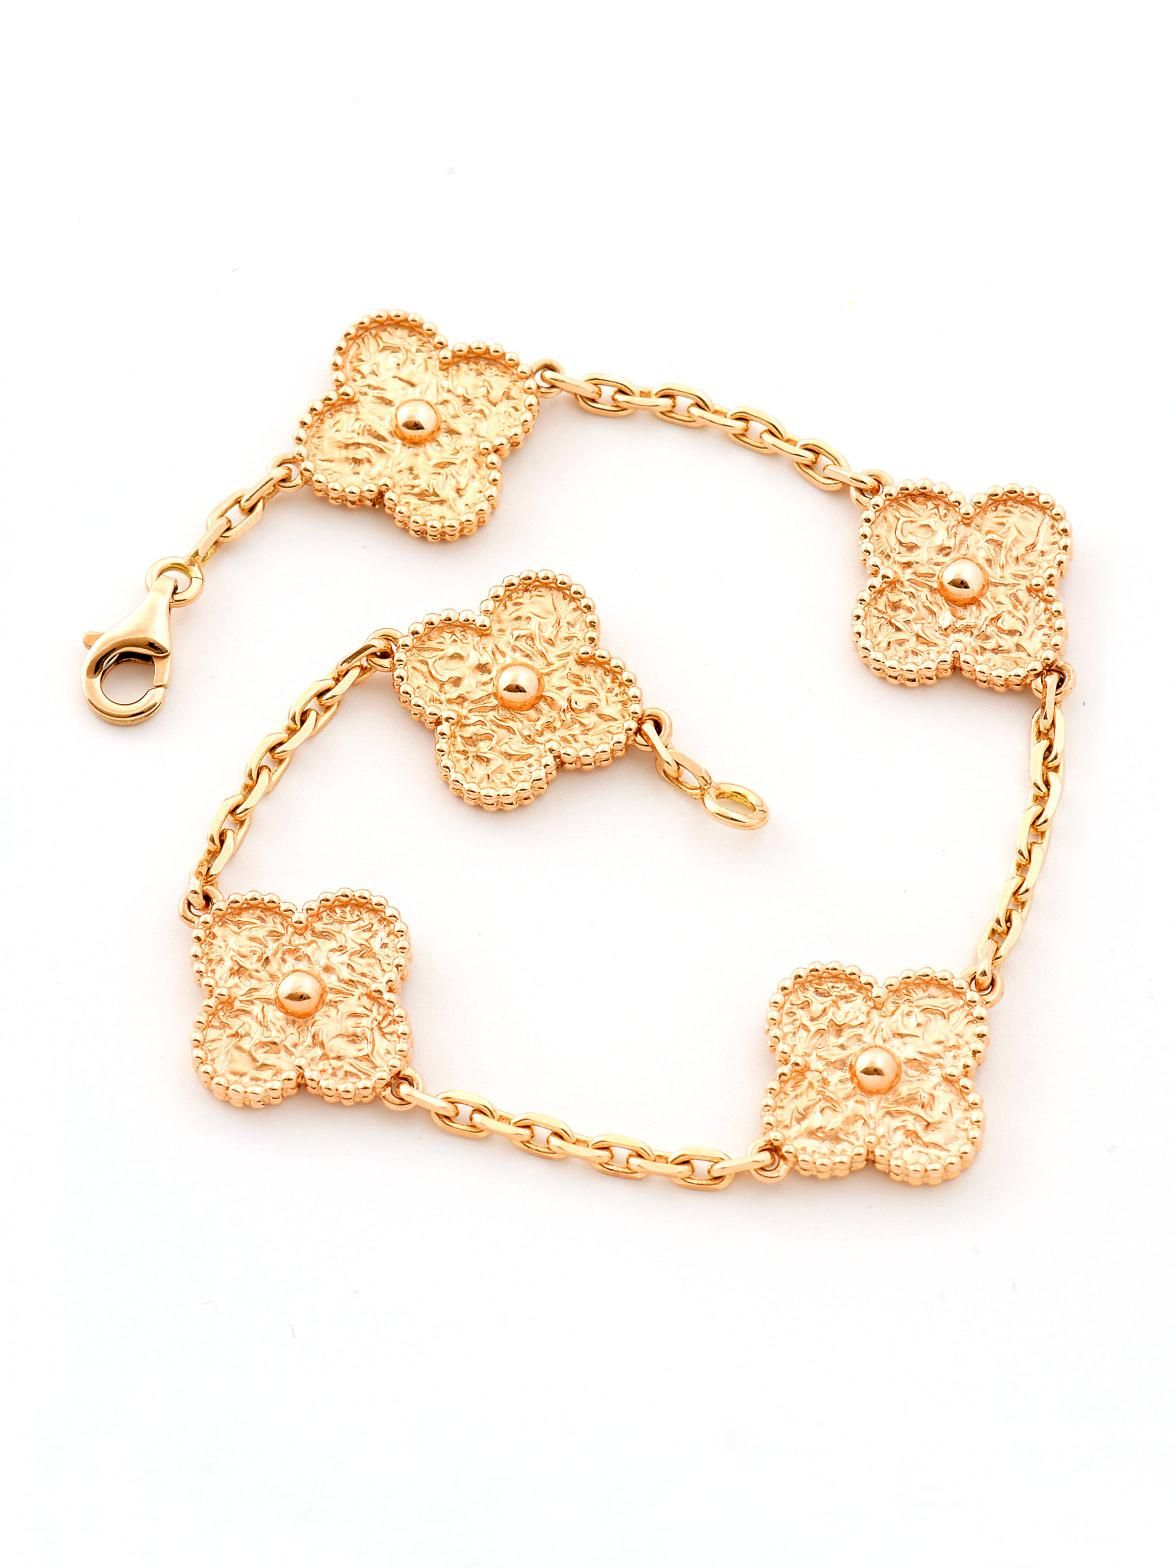 90e30760d8 Van Cleef   Arpels 18K Rose Gold 5 Motif Vintage Alhambra Bracelet at  London Jewelers!